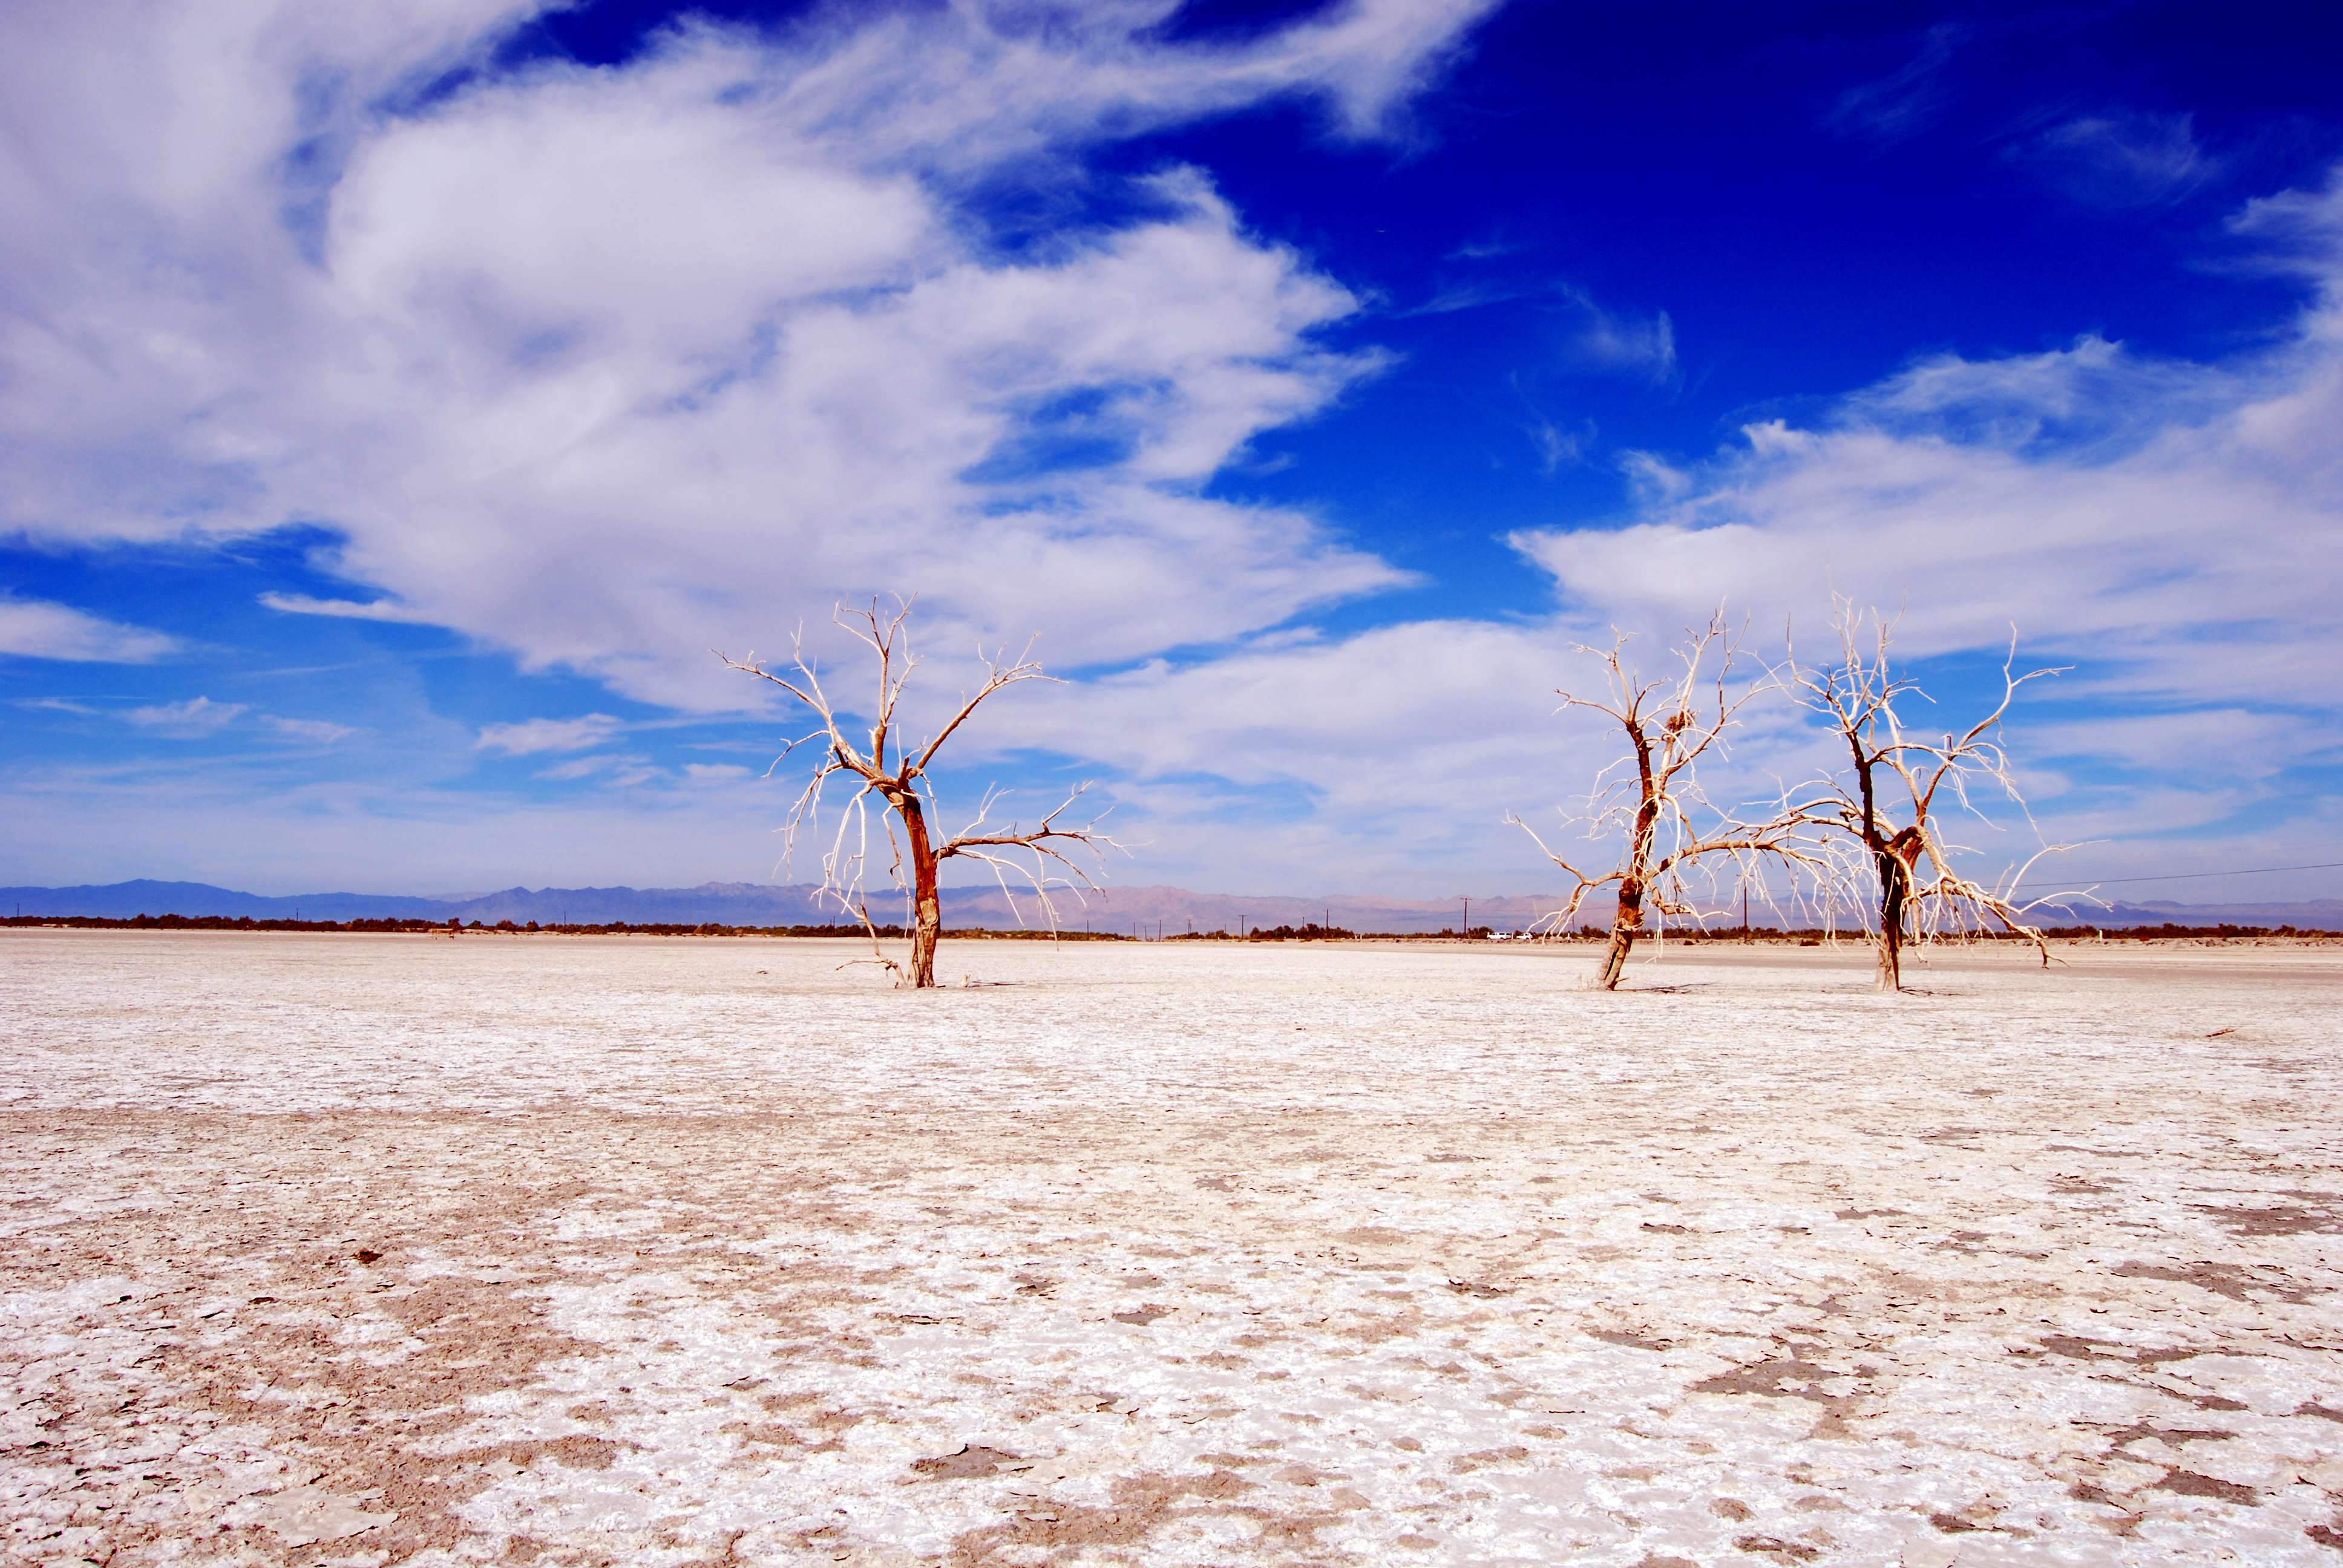 122854 download wallpaper Nature, Trees, Branches, Sky, Clouds, Dry Lake, Desert screensavers and pictures for free